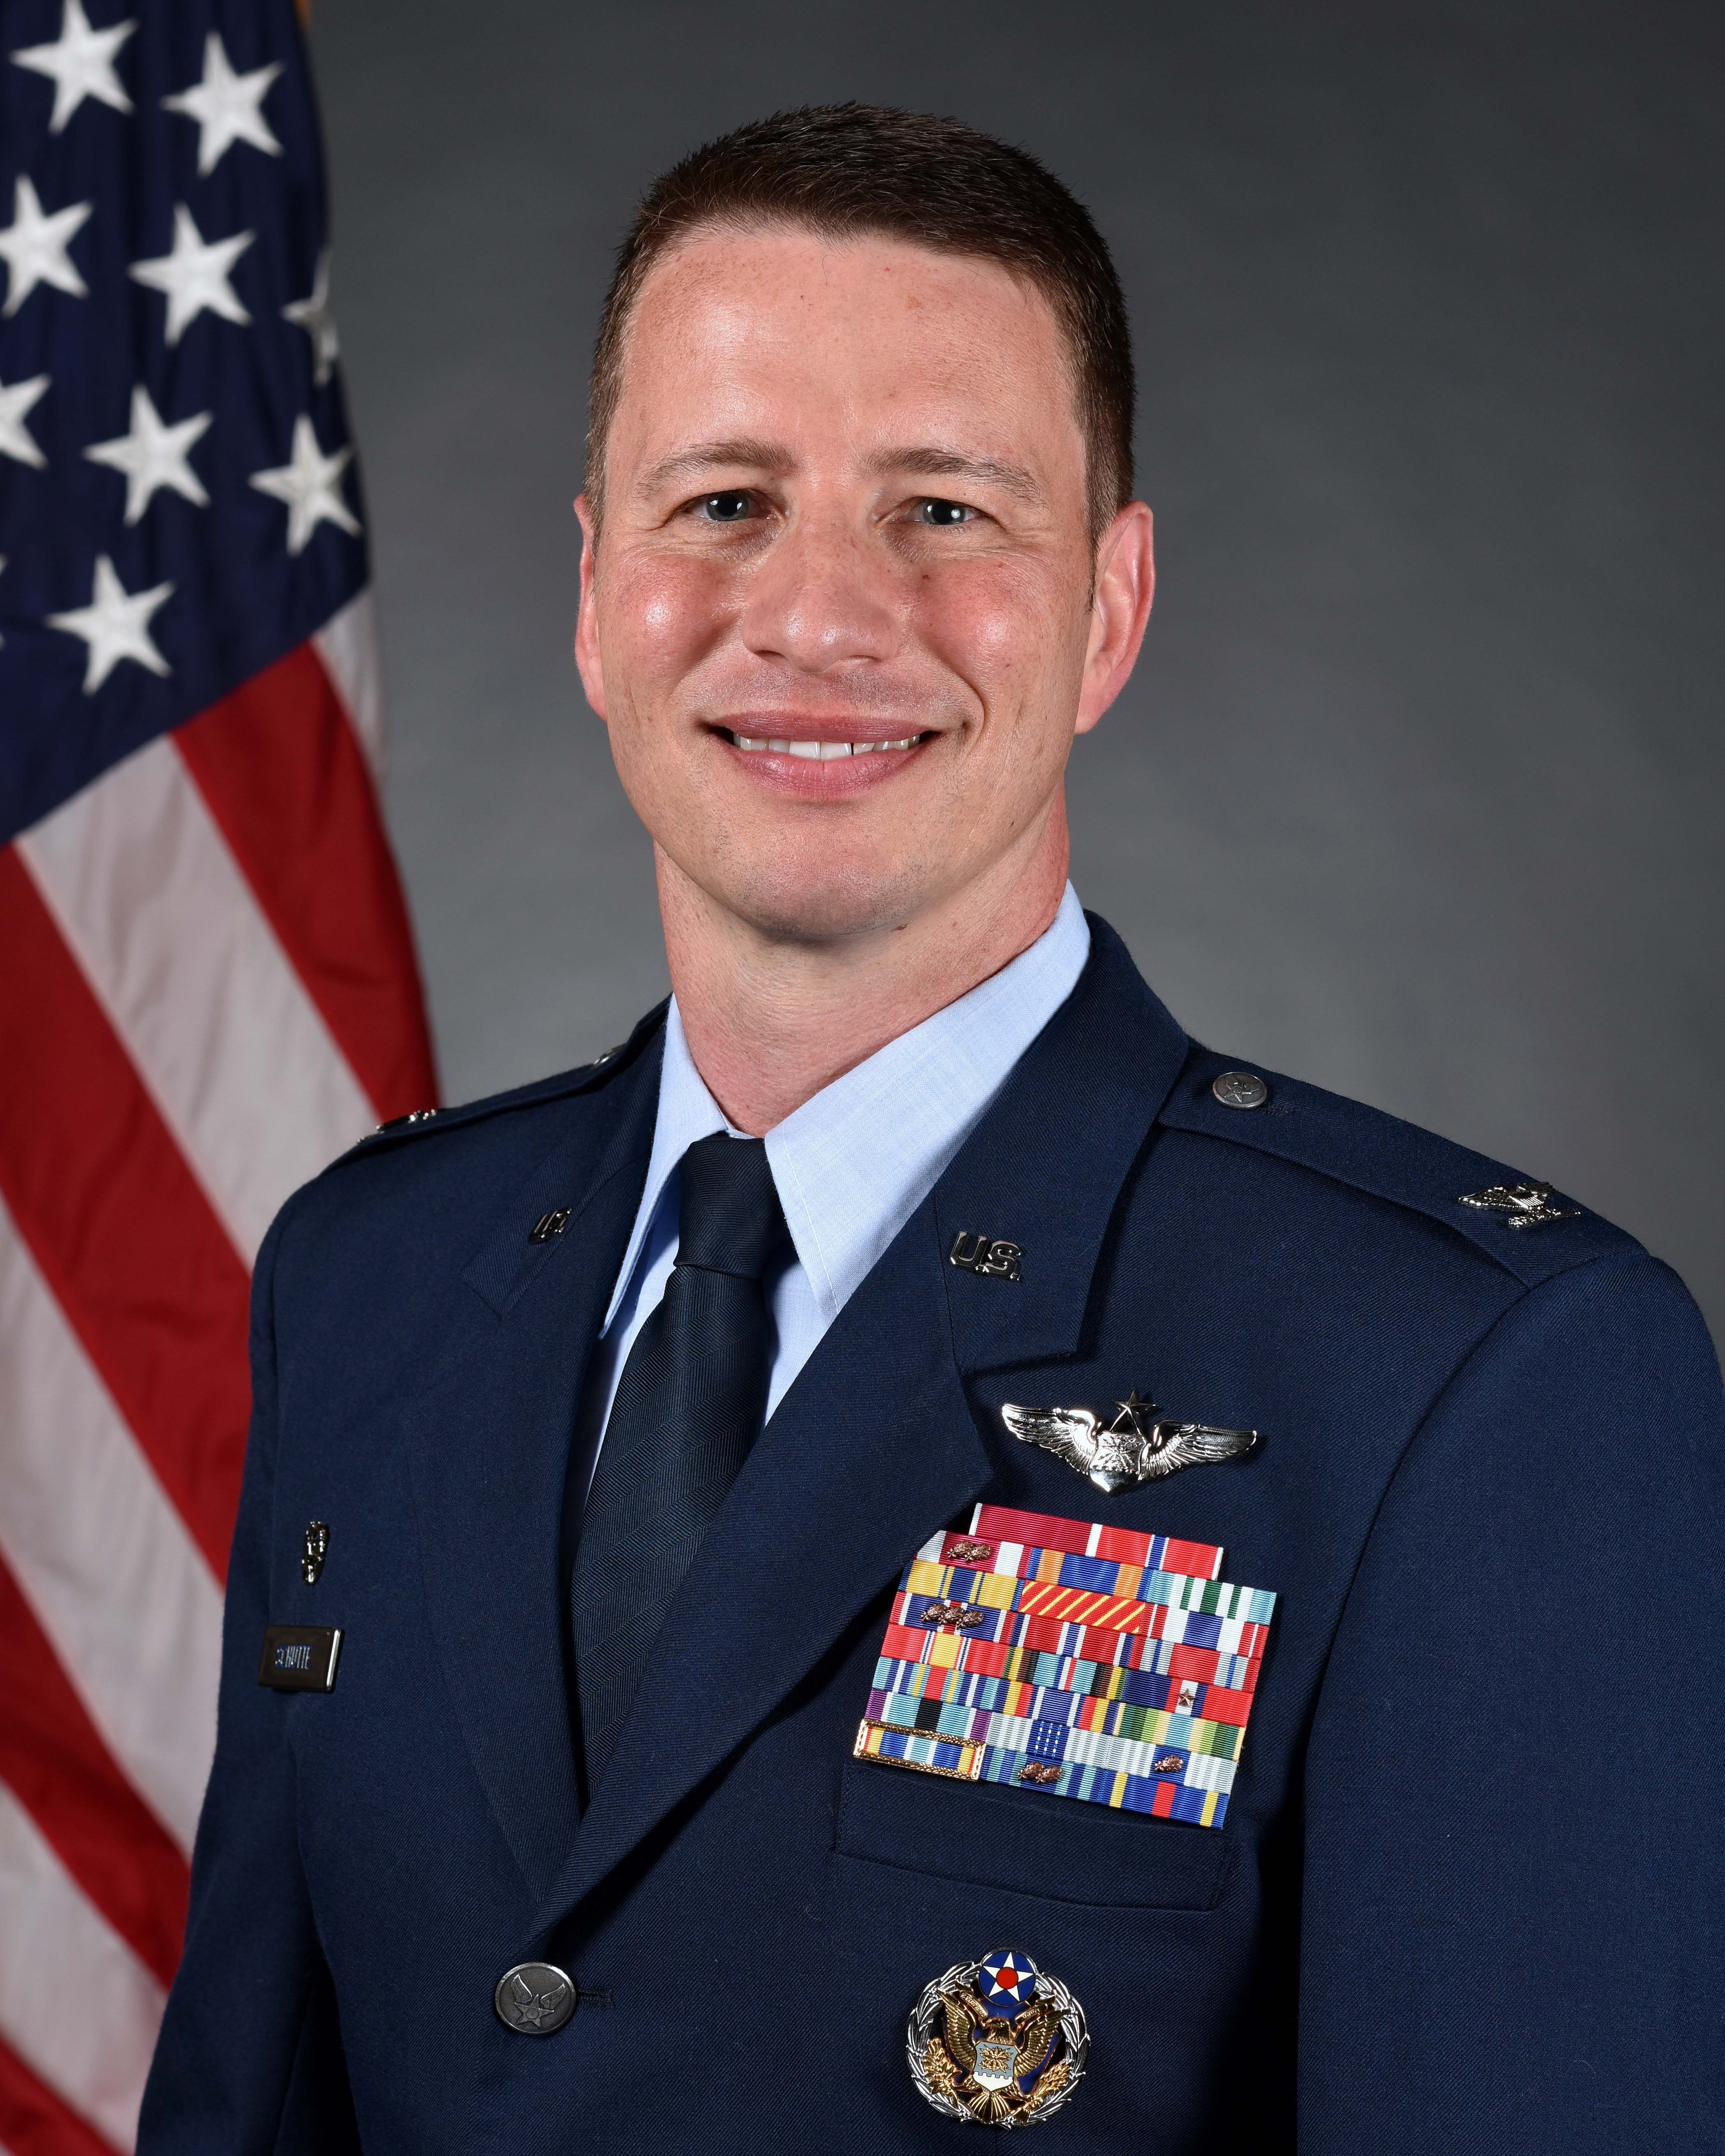 White man in Blue Air Force Uniform in front of Red, white and Blue American flag.